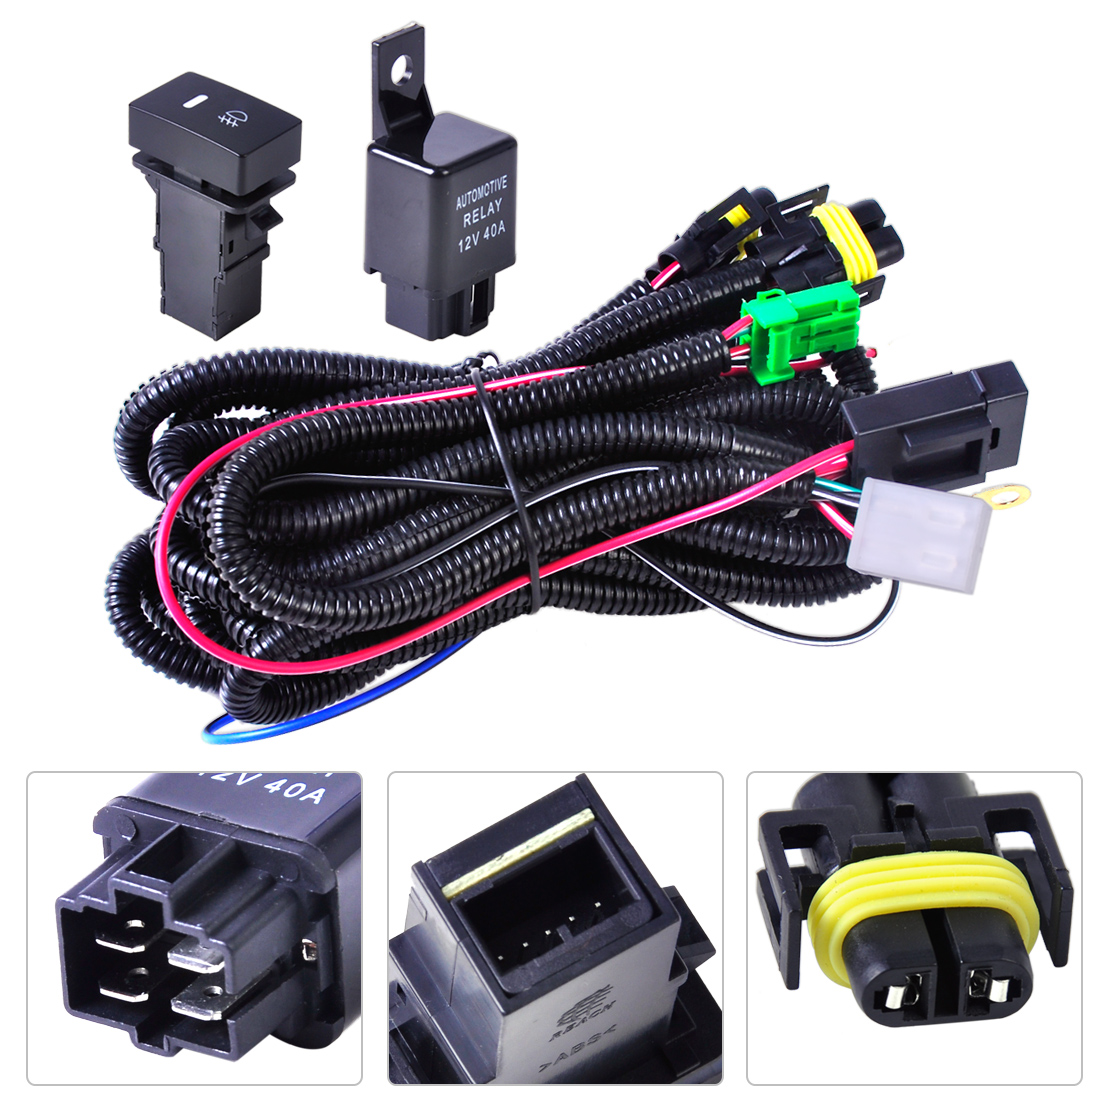 1 wiring harness sockets switch for h11 fog light lamp ford focus 2001 mustang fog light wiring harness at creativeand.co